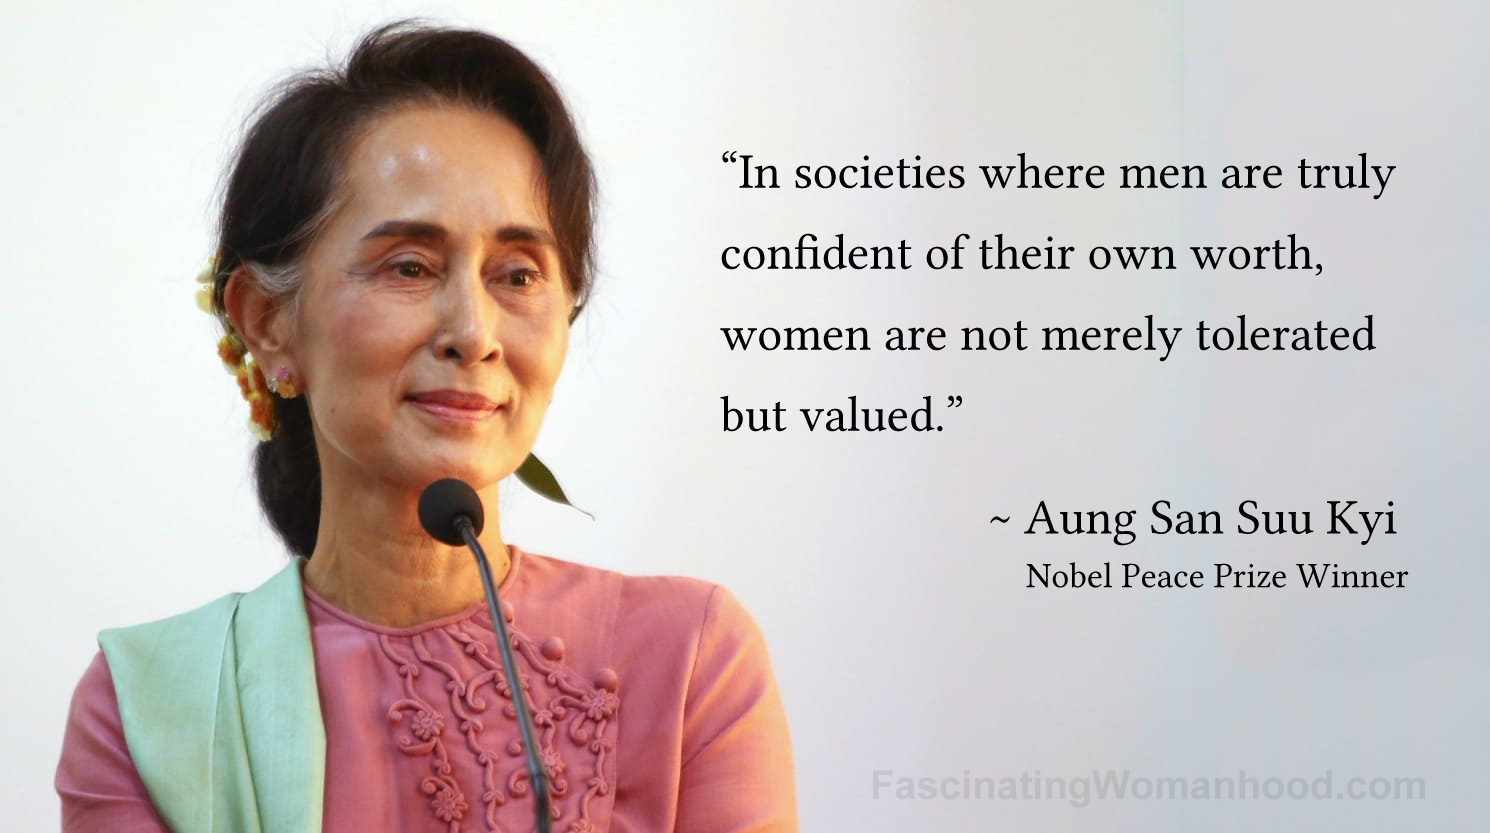 A Quote by Aung San Suu Kyi.jpg